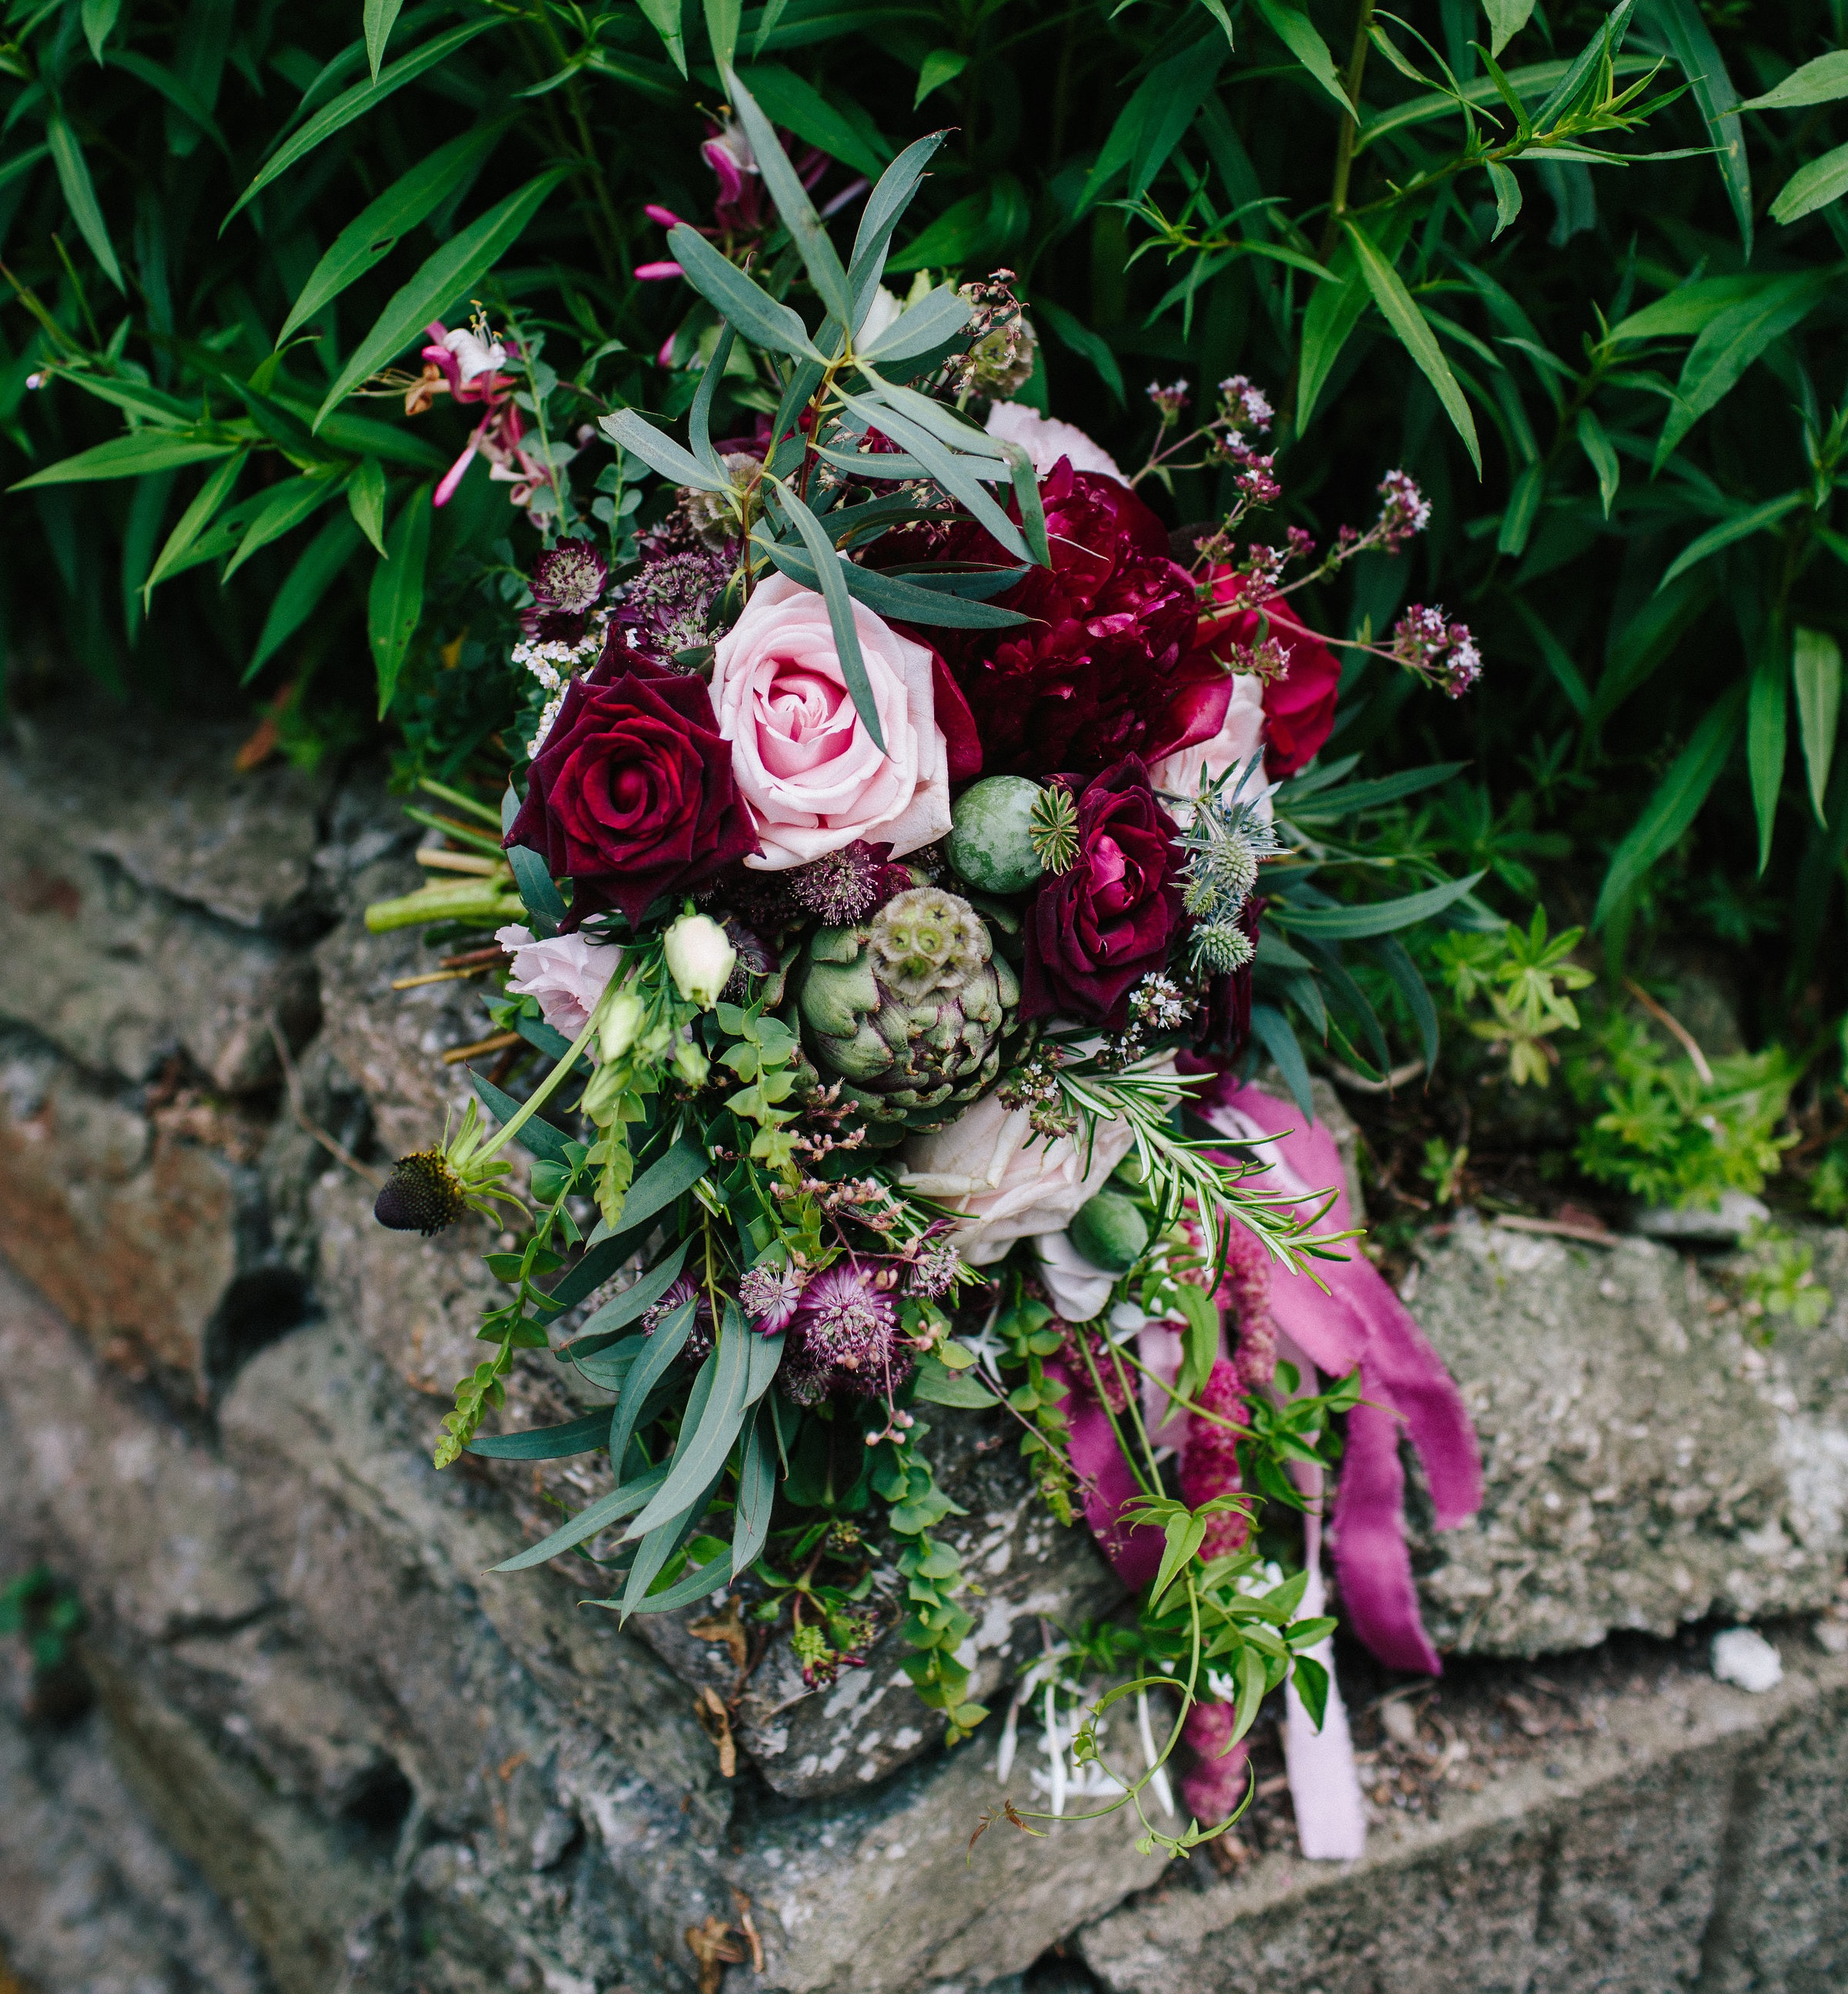 The beautiful marjoram flowers can be seen in the top right of this photo of the wedding bouquet we made for Mary, taken by Nathan English Photography